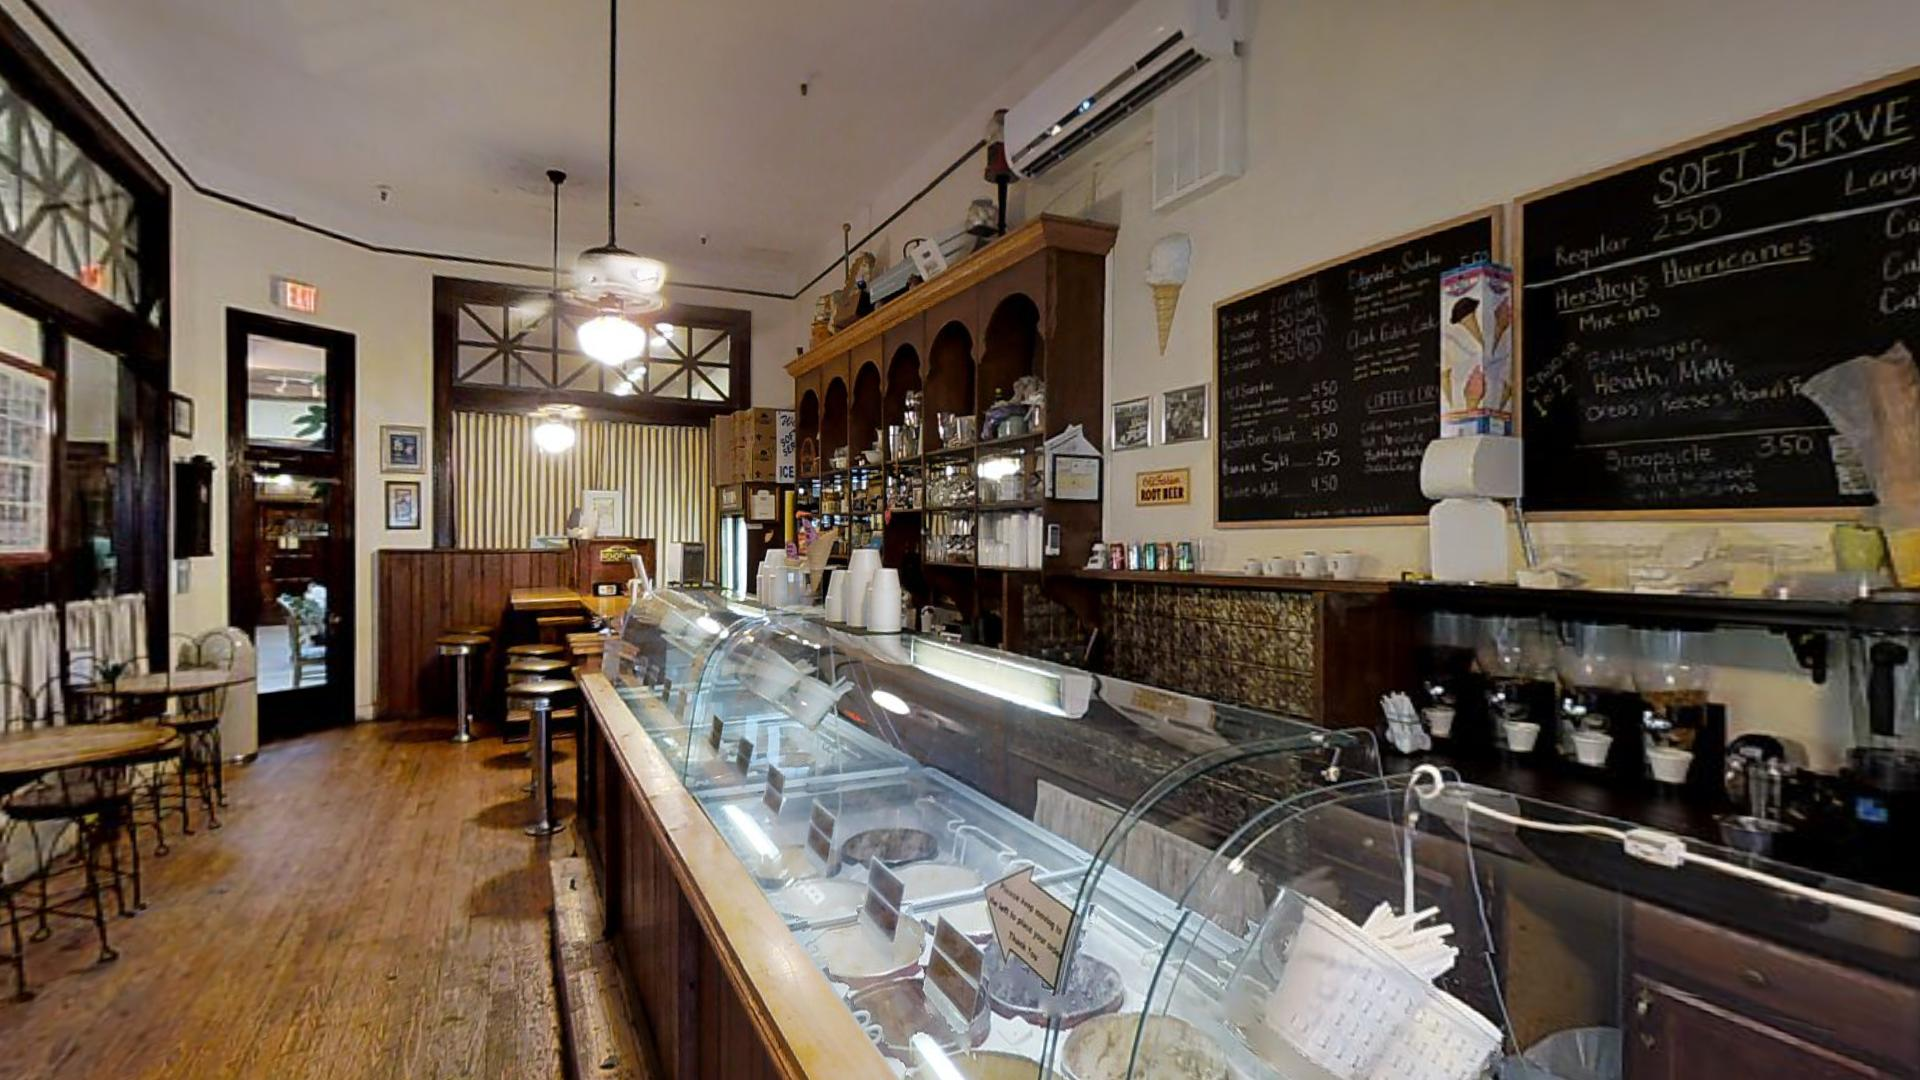 scoops old fashion ice cream parlor matterport